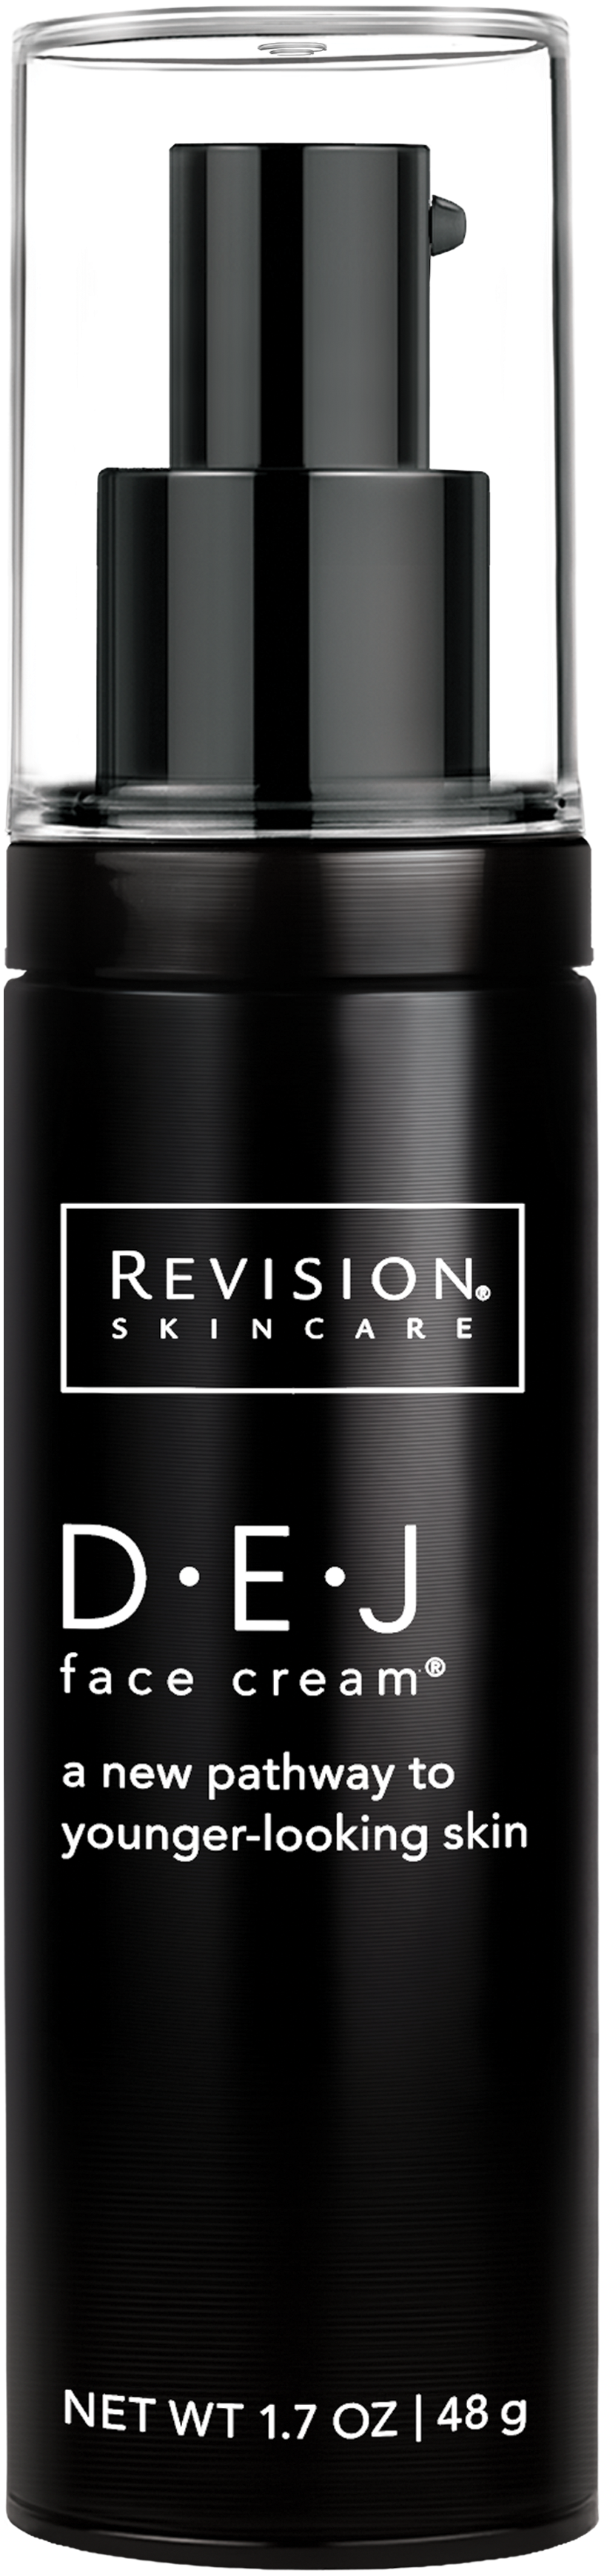 D-E-J Face_Cream_Revision.png